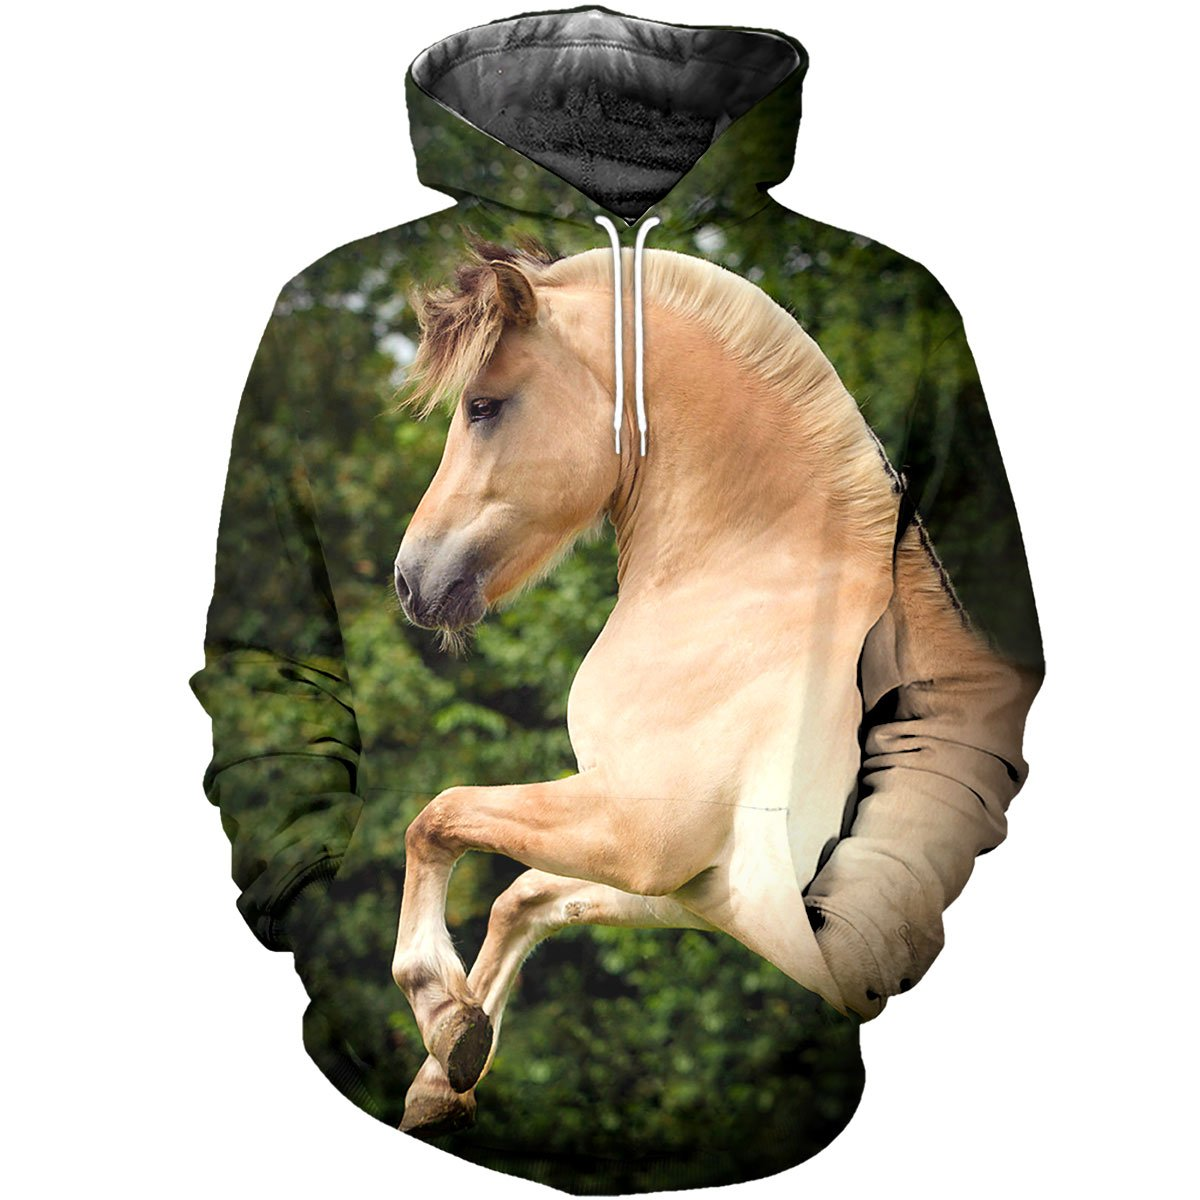 3D All Over Printed Fjord Horse Shirts and Shorts